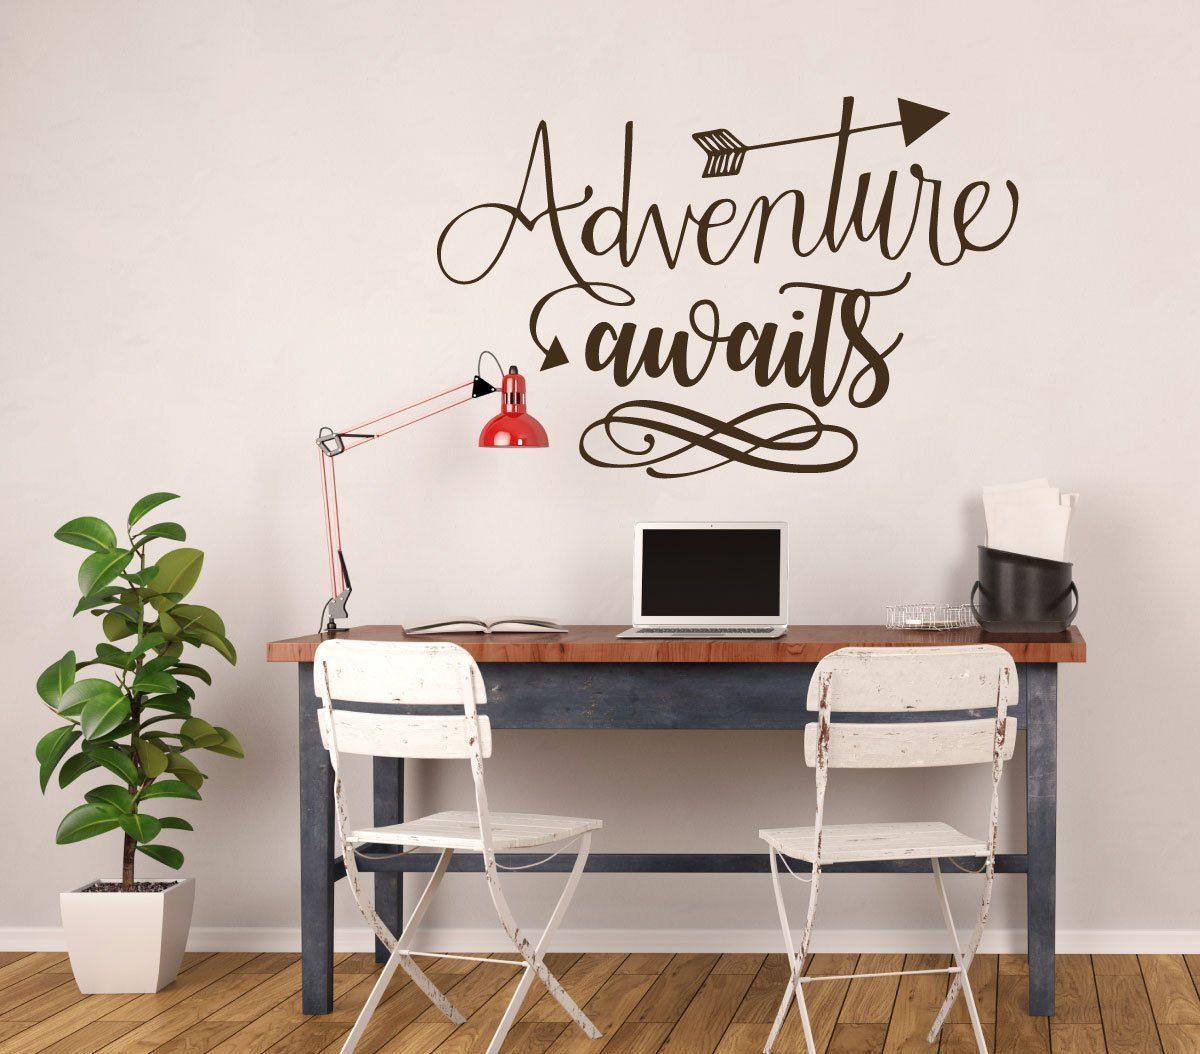 Adventure Wall Decal - Adventure Awaits Quote - Vinyl Sticker Decoration For the Home, Office, or Classroom